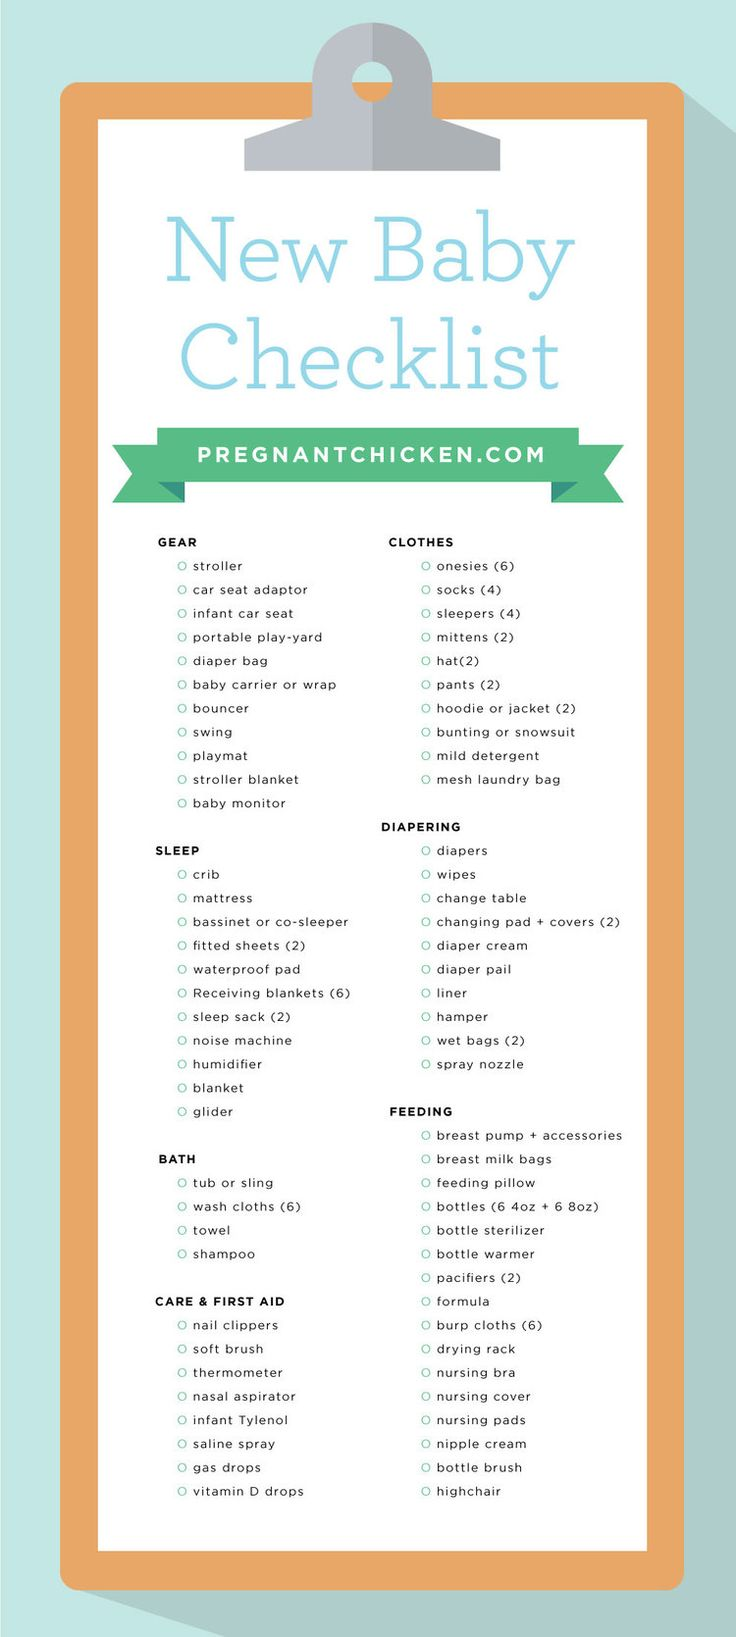 Complete checklist of athe items you'll need to prepare for a baby - it even includes newborn gear guides and suggestions to fit every budget! via @pregnantchicken